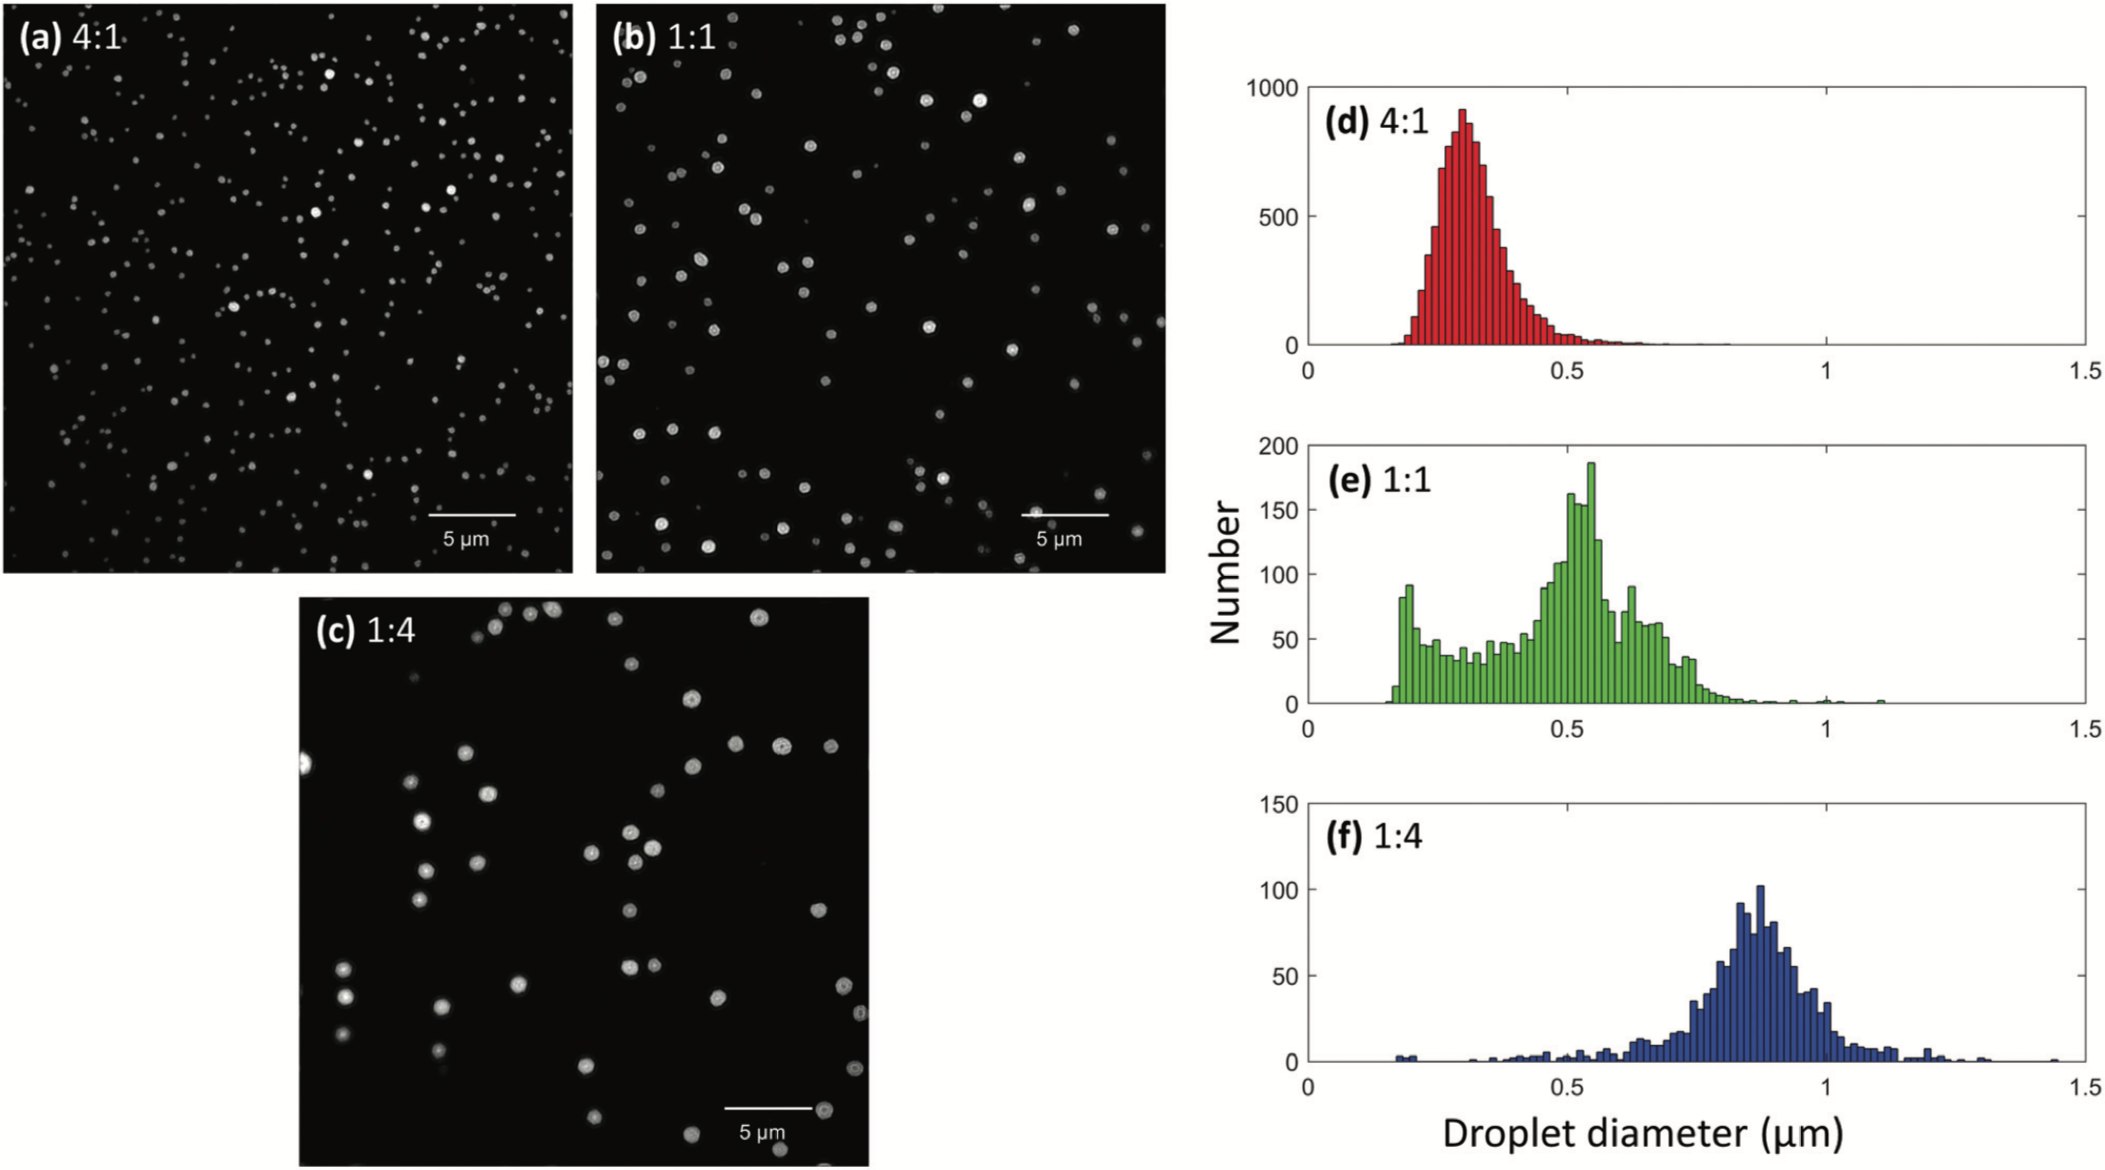 Electrospray Droplet Sizing by Structured Illumination Microscopy